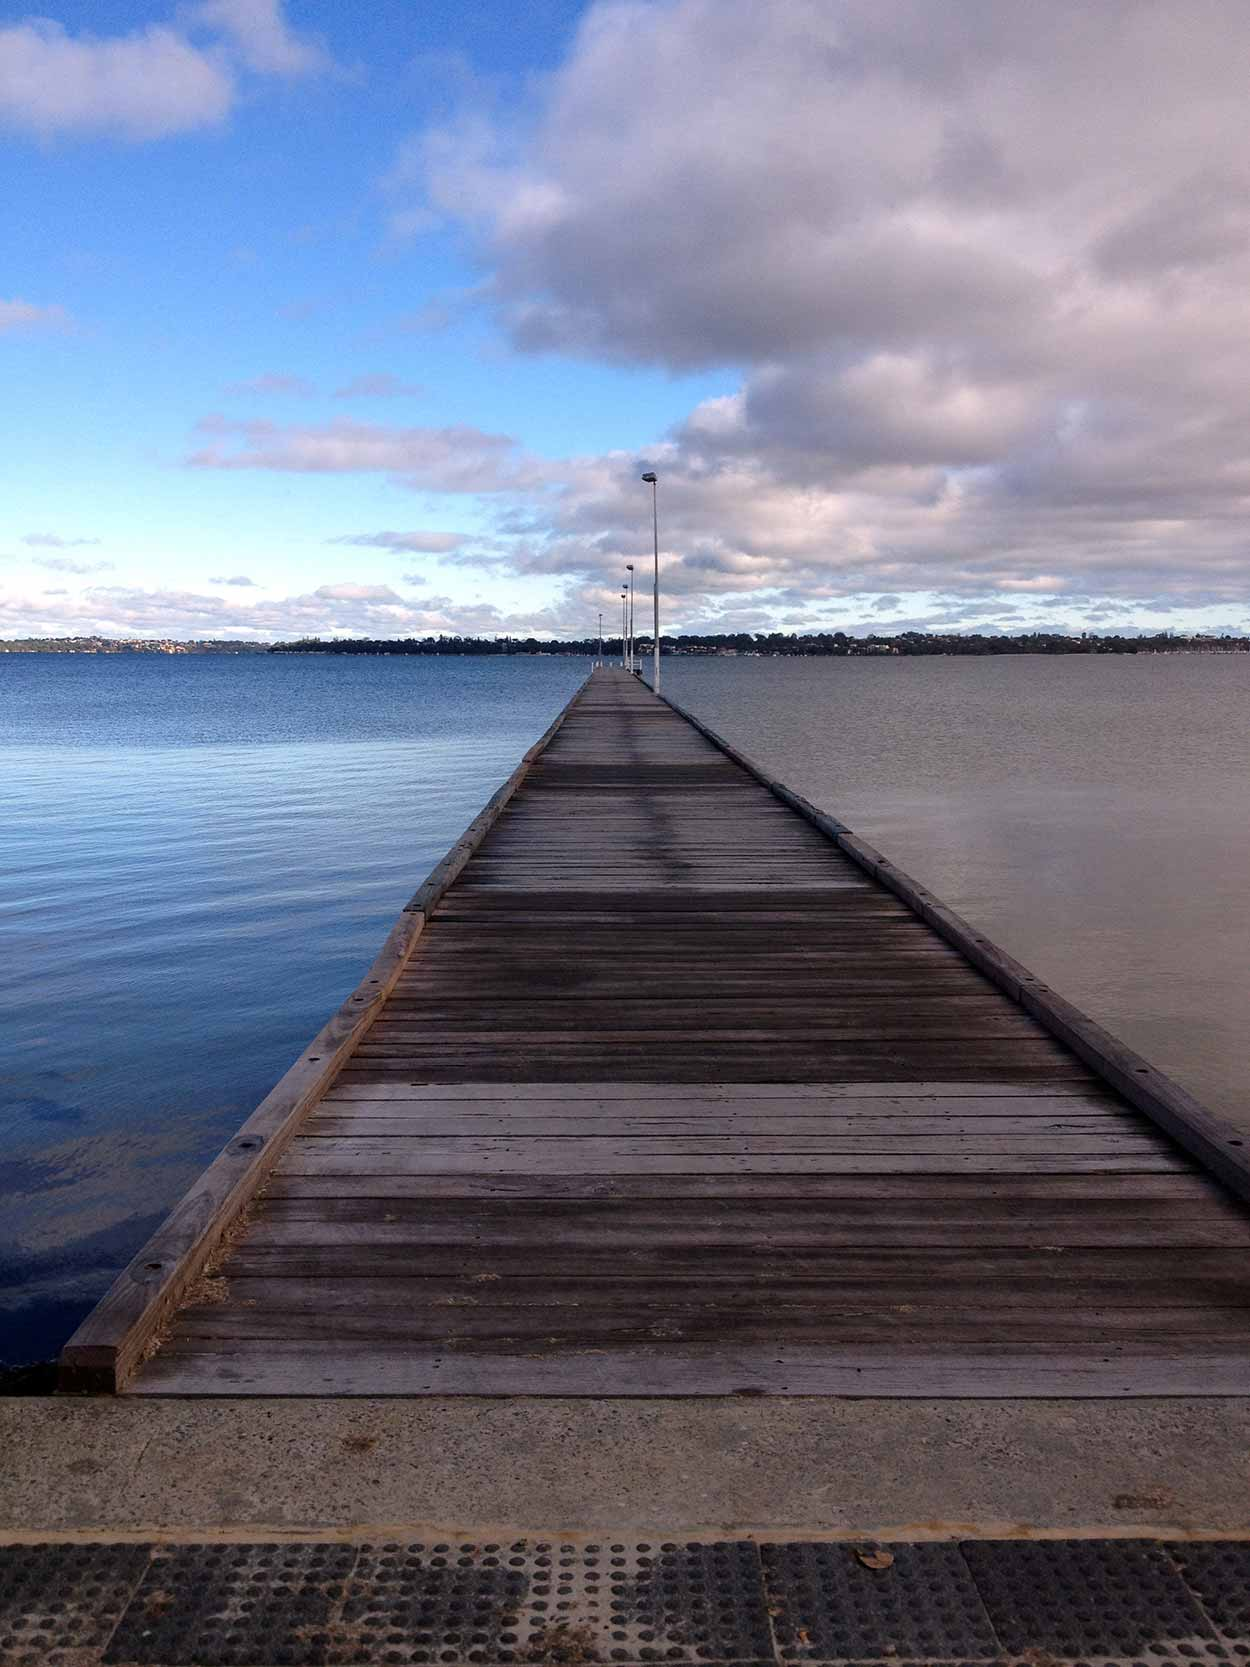 The 210 metre Como Jetty stretching out into the Swan River,  Perth, Western Australia